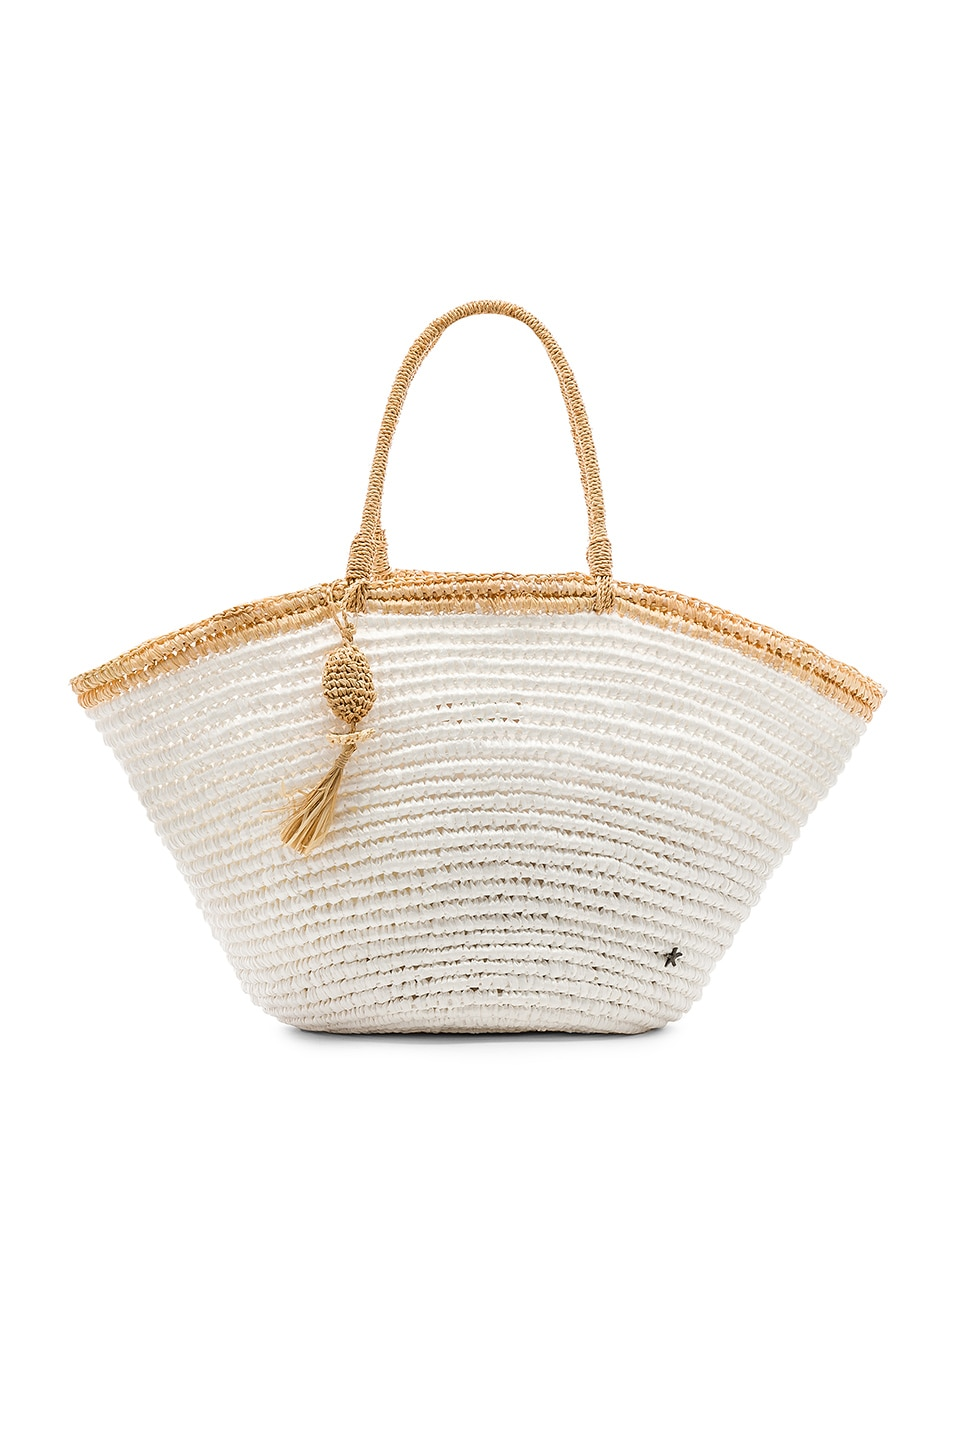 florabella Montanita Bag in White & Natural